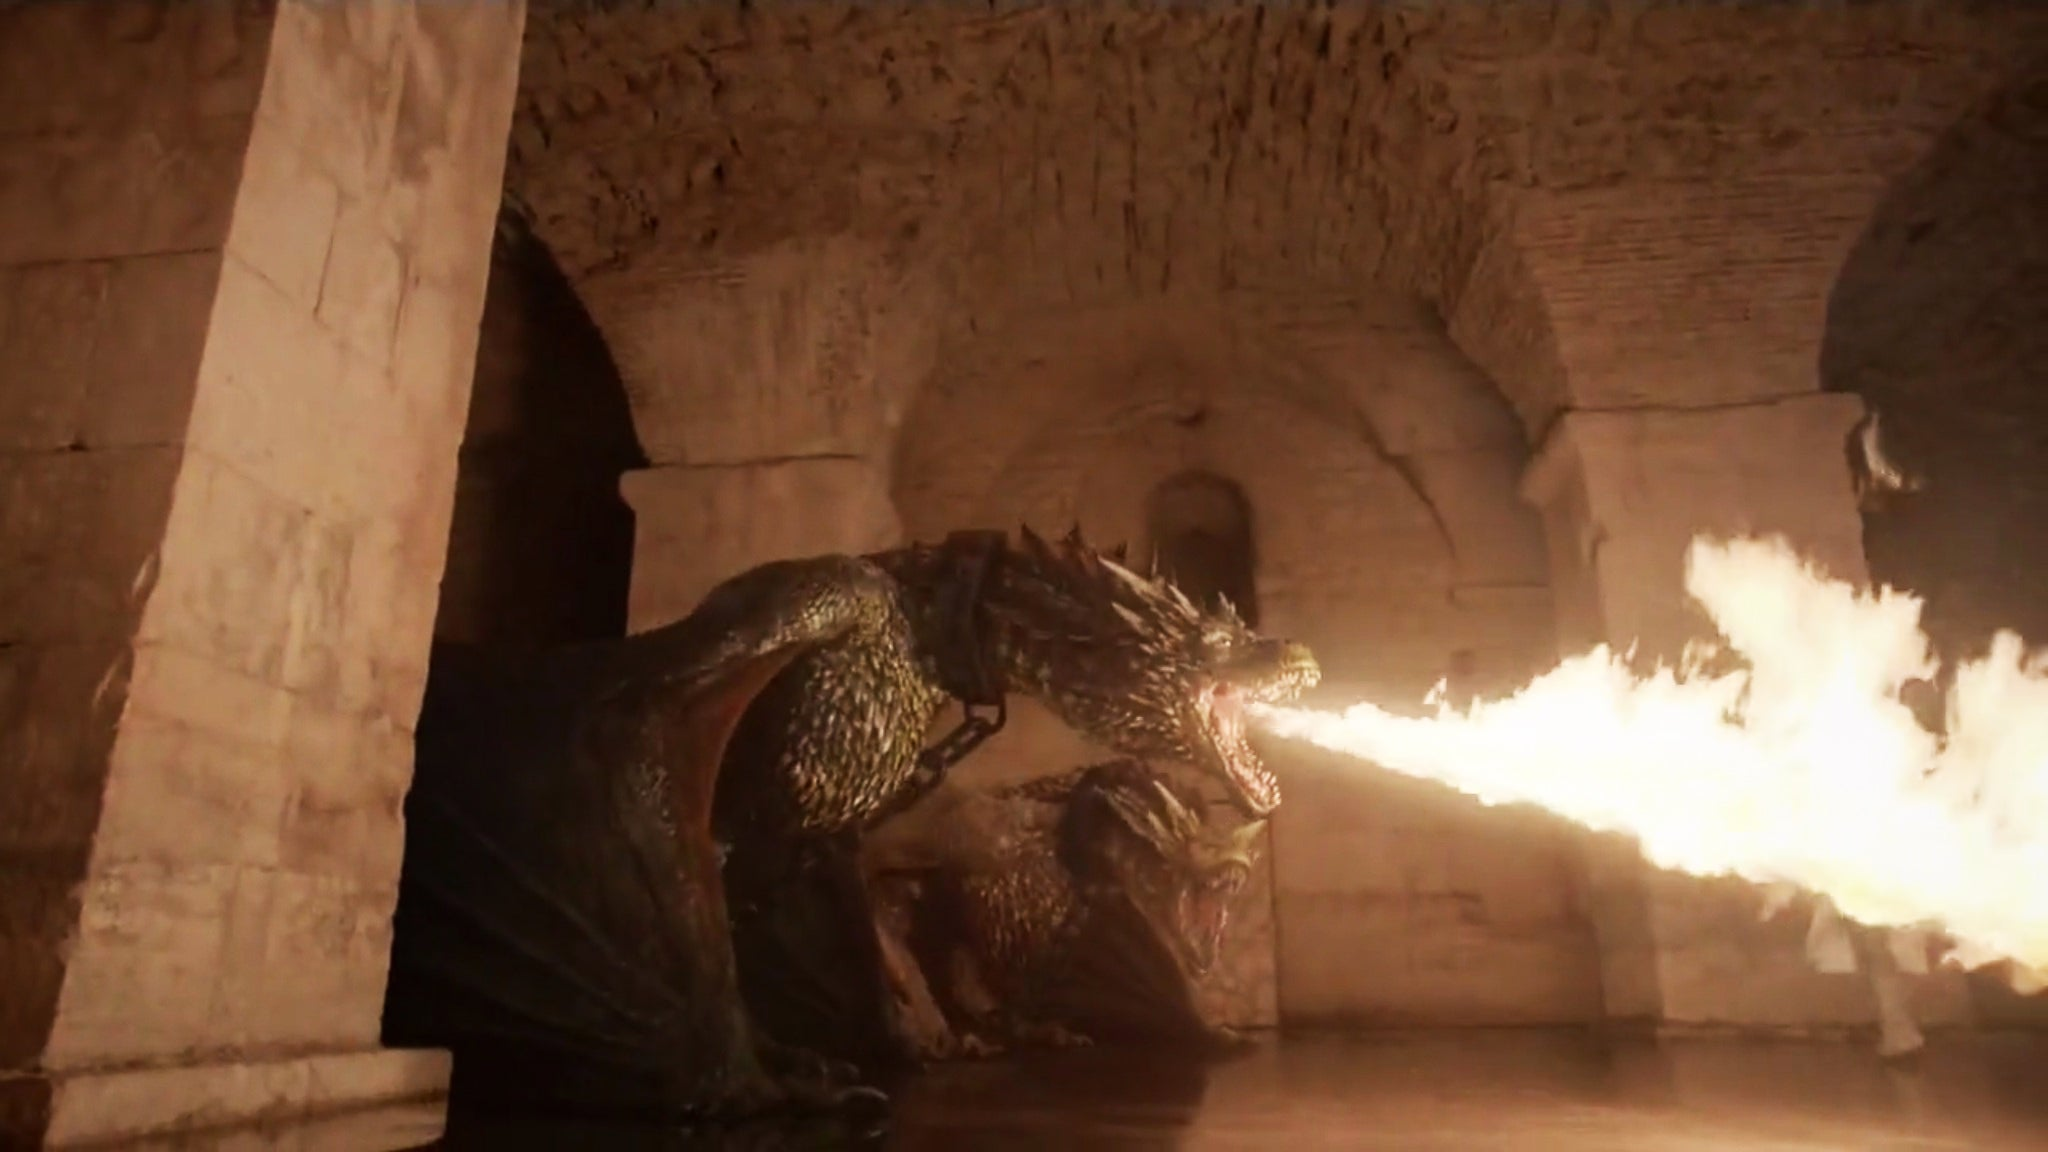 Dragons game of thrones colors - Game Of Thrones Season 6 Spoilers It Looks Like Drogon Will Come To Daenerys Rescue The Independent